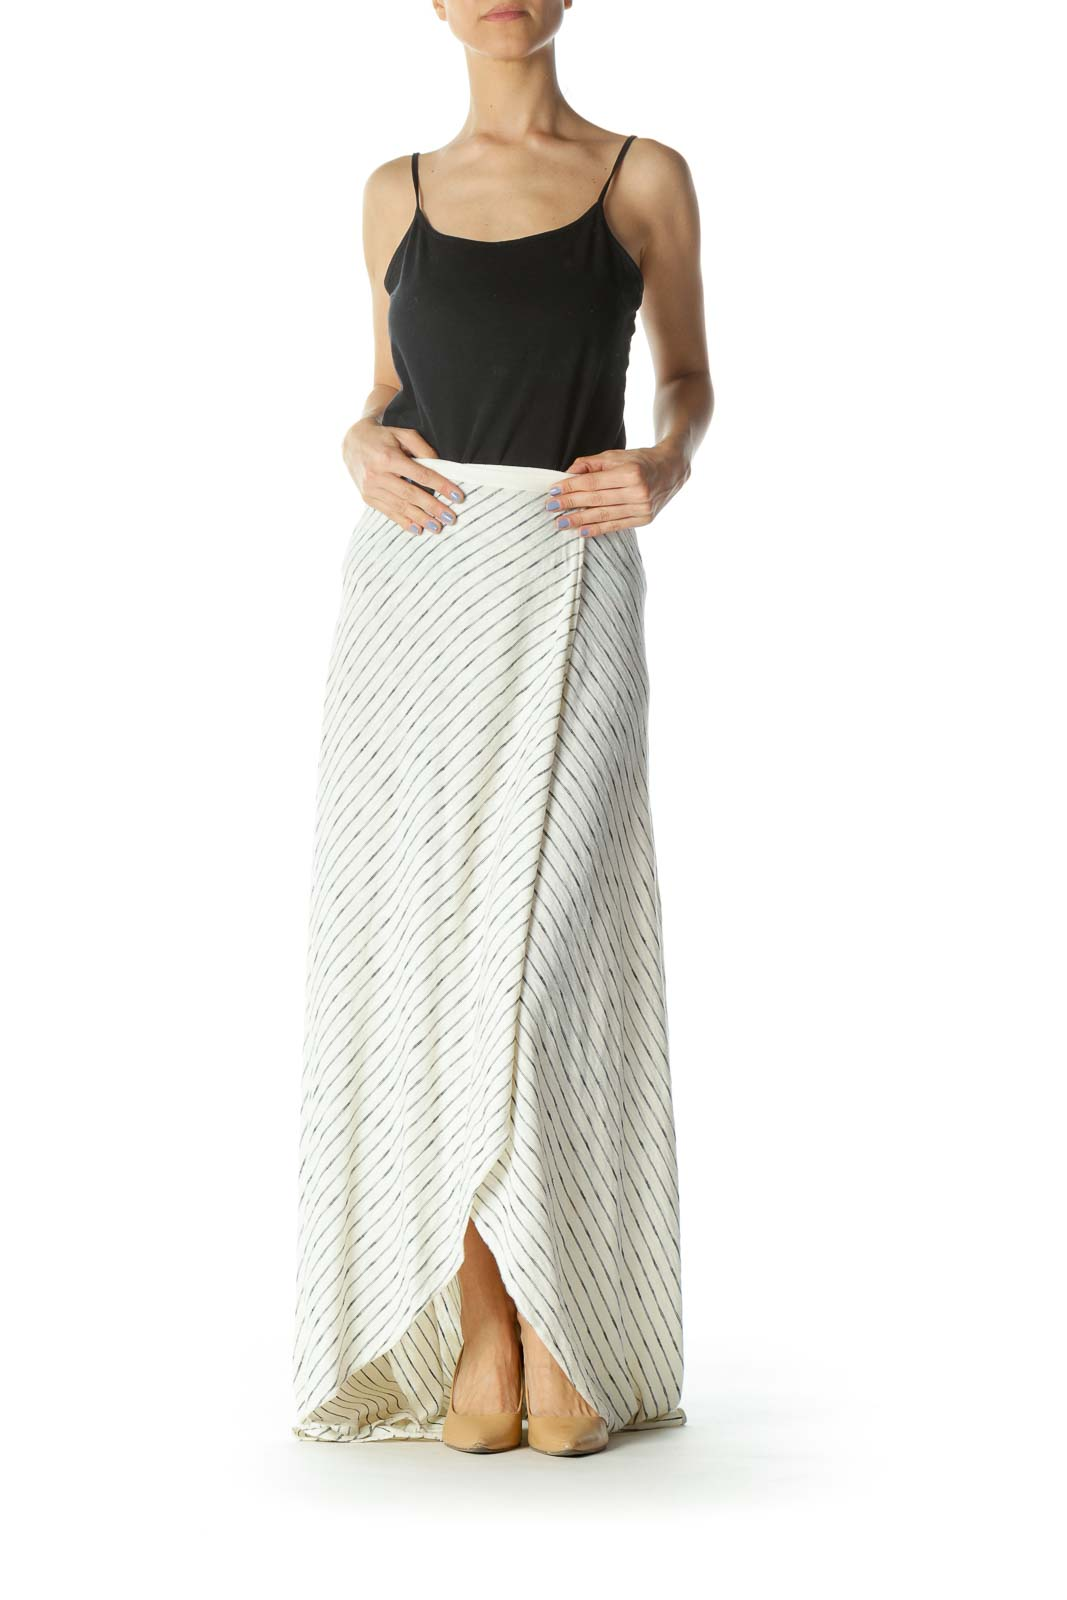 Cream/Black Striped Knit Maxi Skirt with Waist Tie